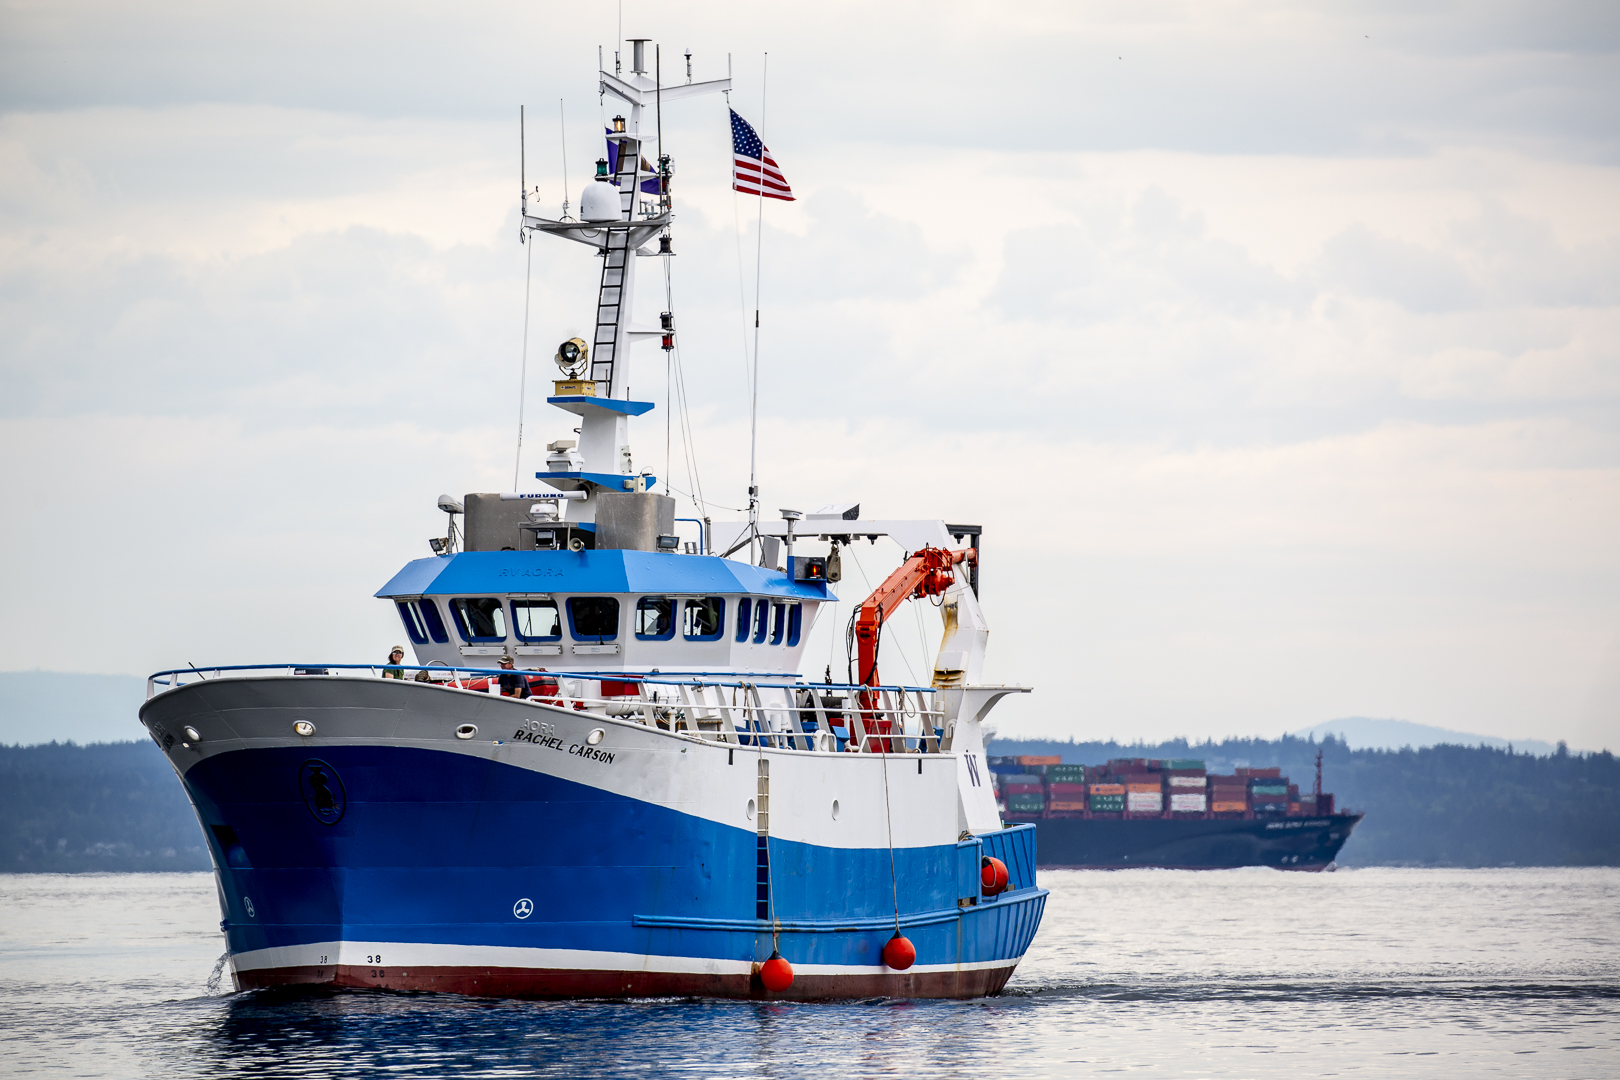 Scientists Find New Vessel For >> New Uw Vessel Rv Rachel Carson Will Explore Regional Waters Uw News